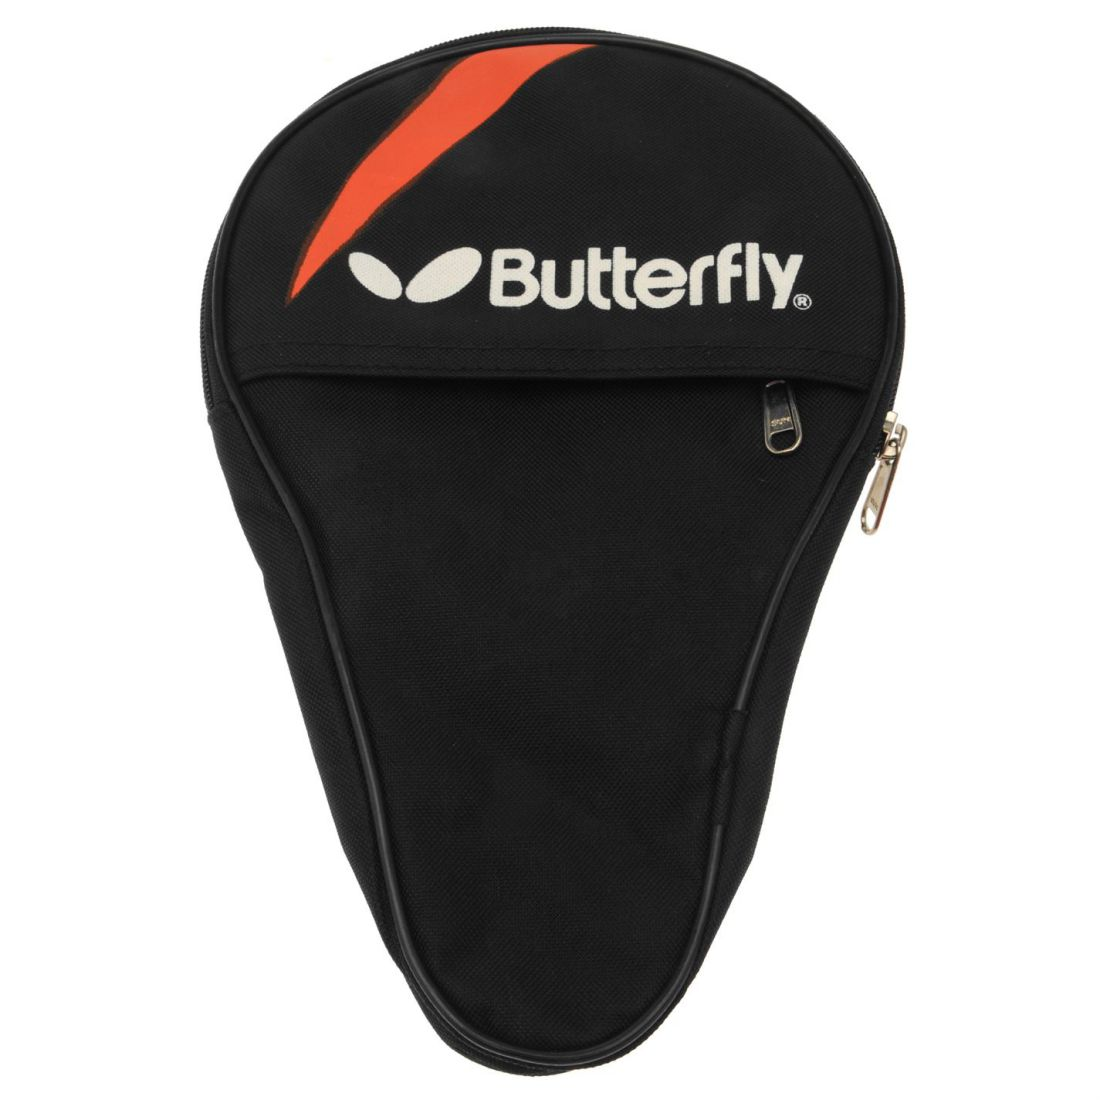 6518b895bef7 Butterfly Bat Cover Table Tennis Sports Case Pouch Racquet Accessories